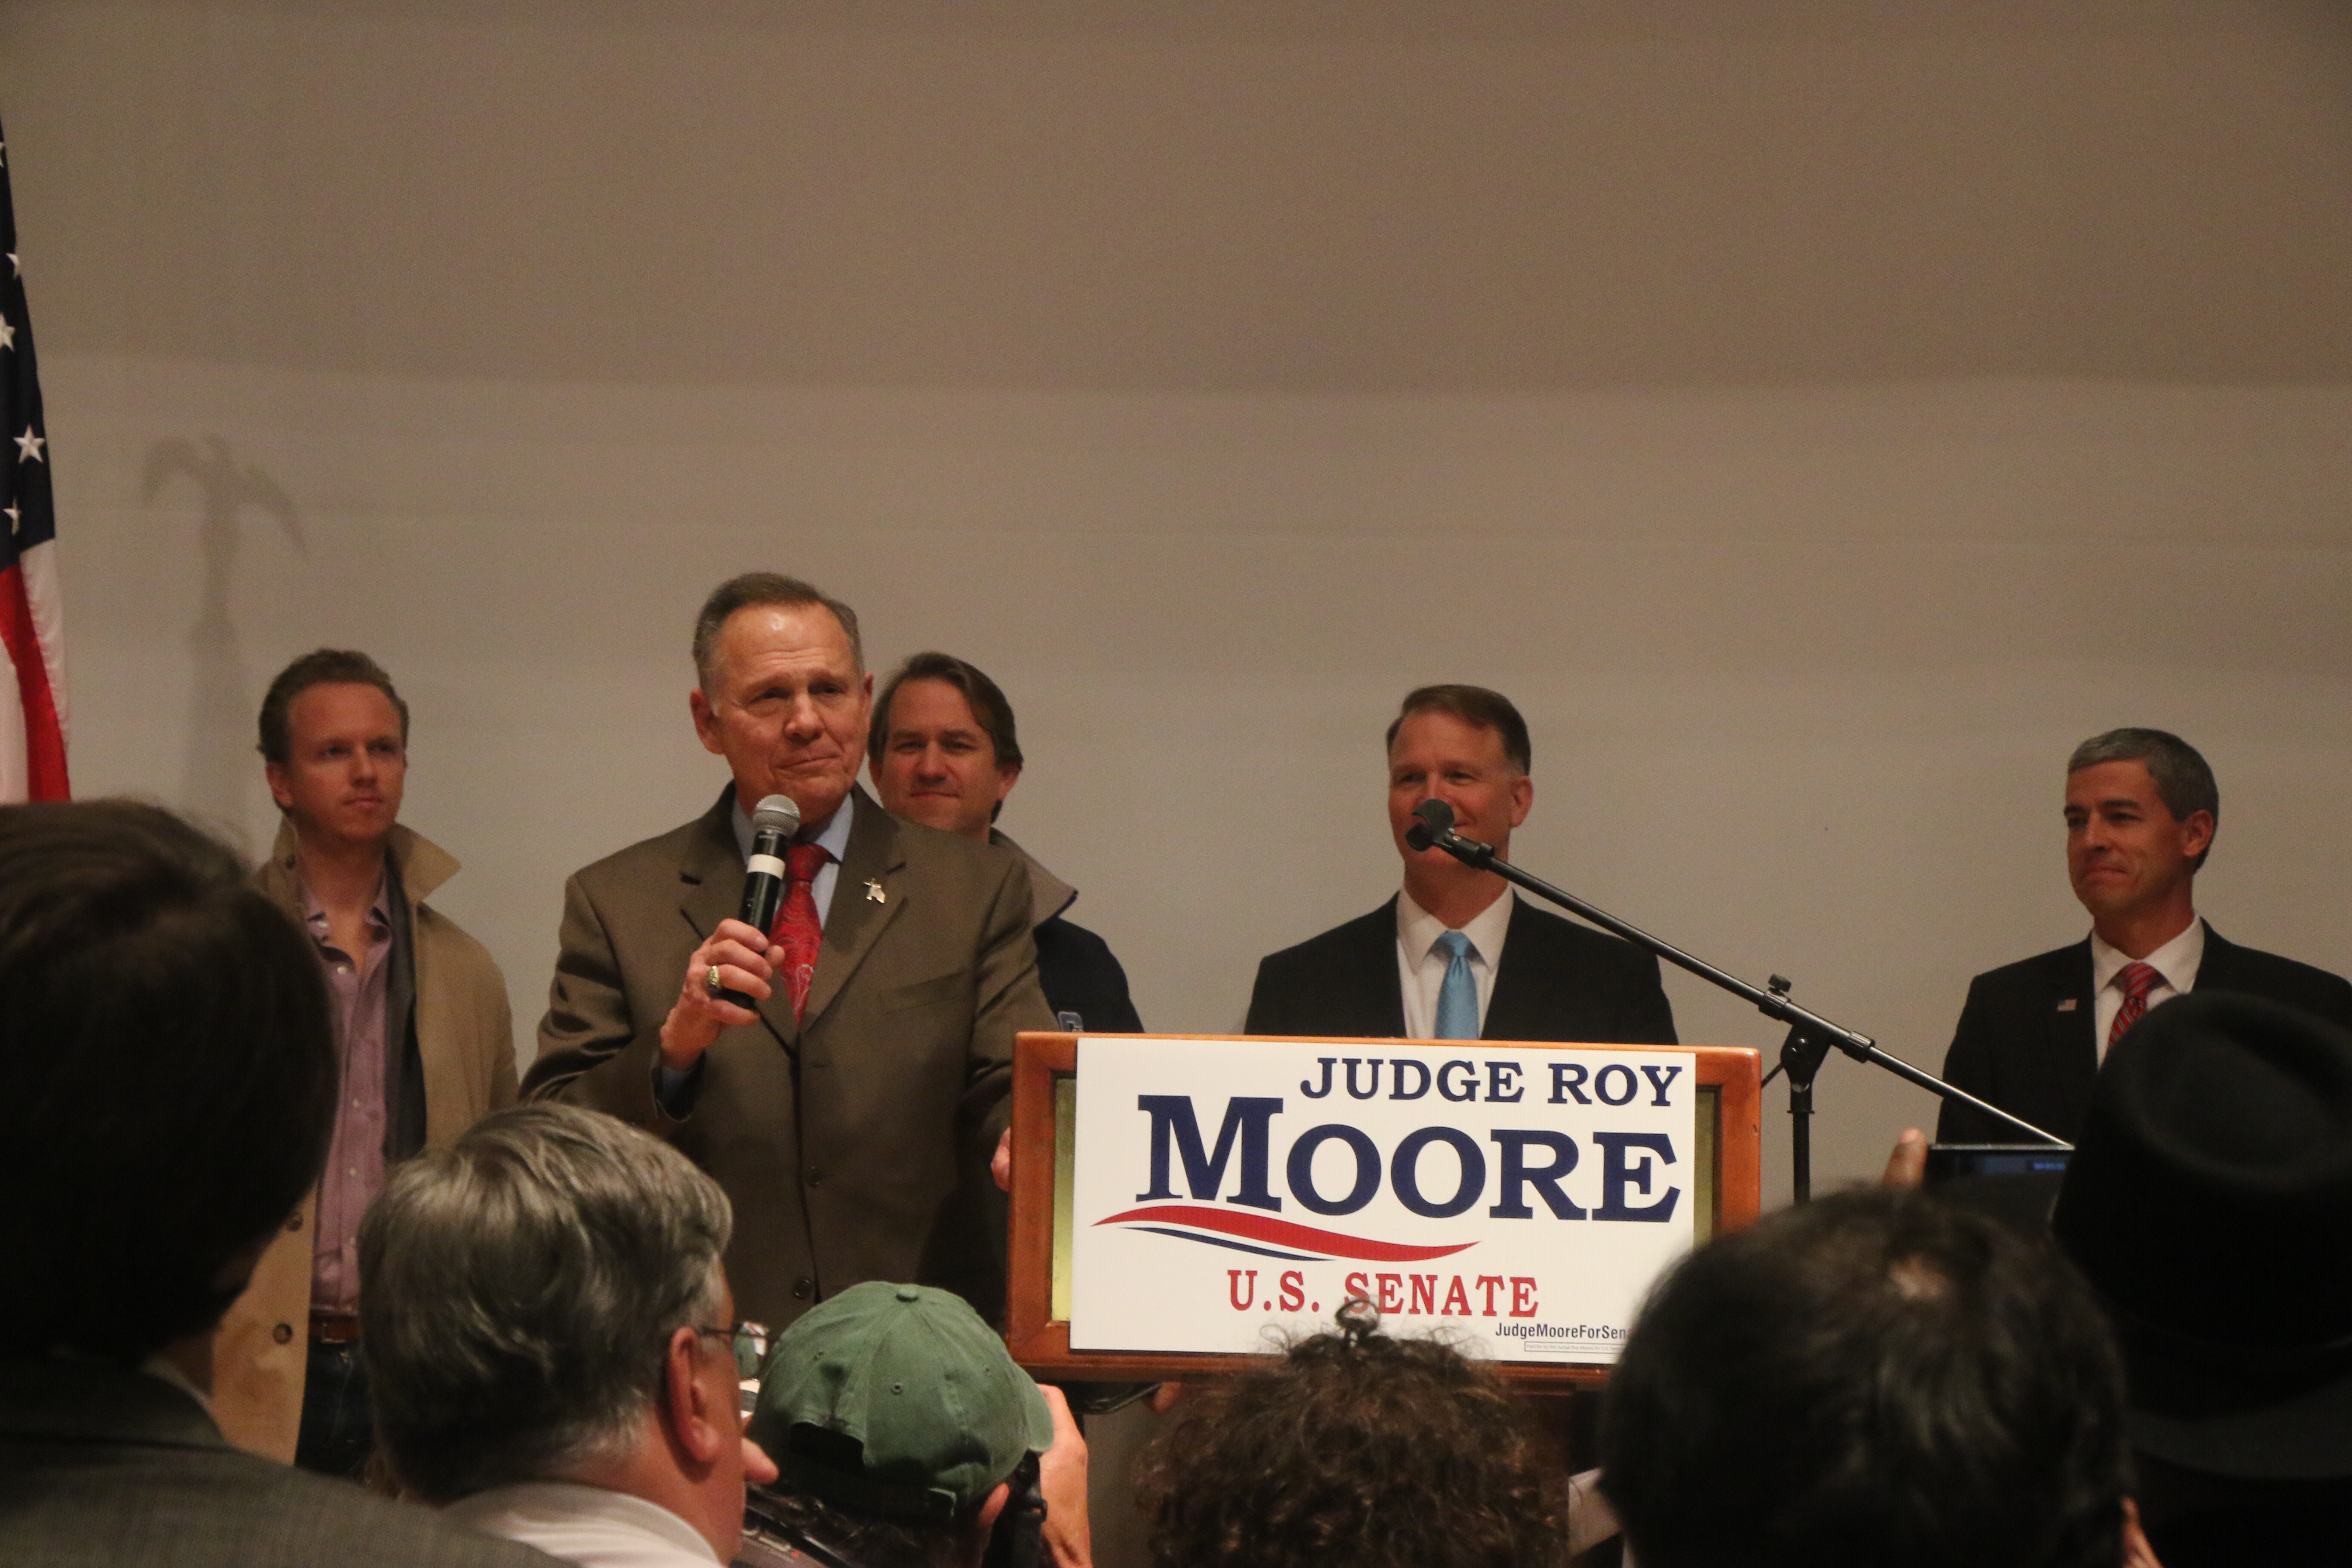 Democrat Doug Jones beats Roy Moore in Alabama Special Senate Election